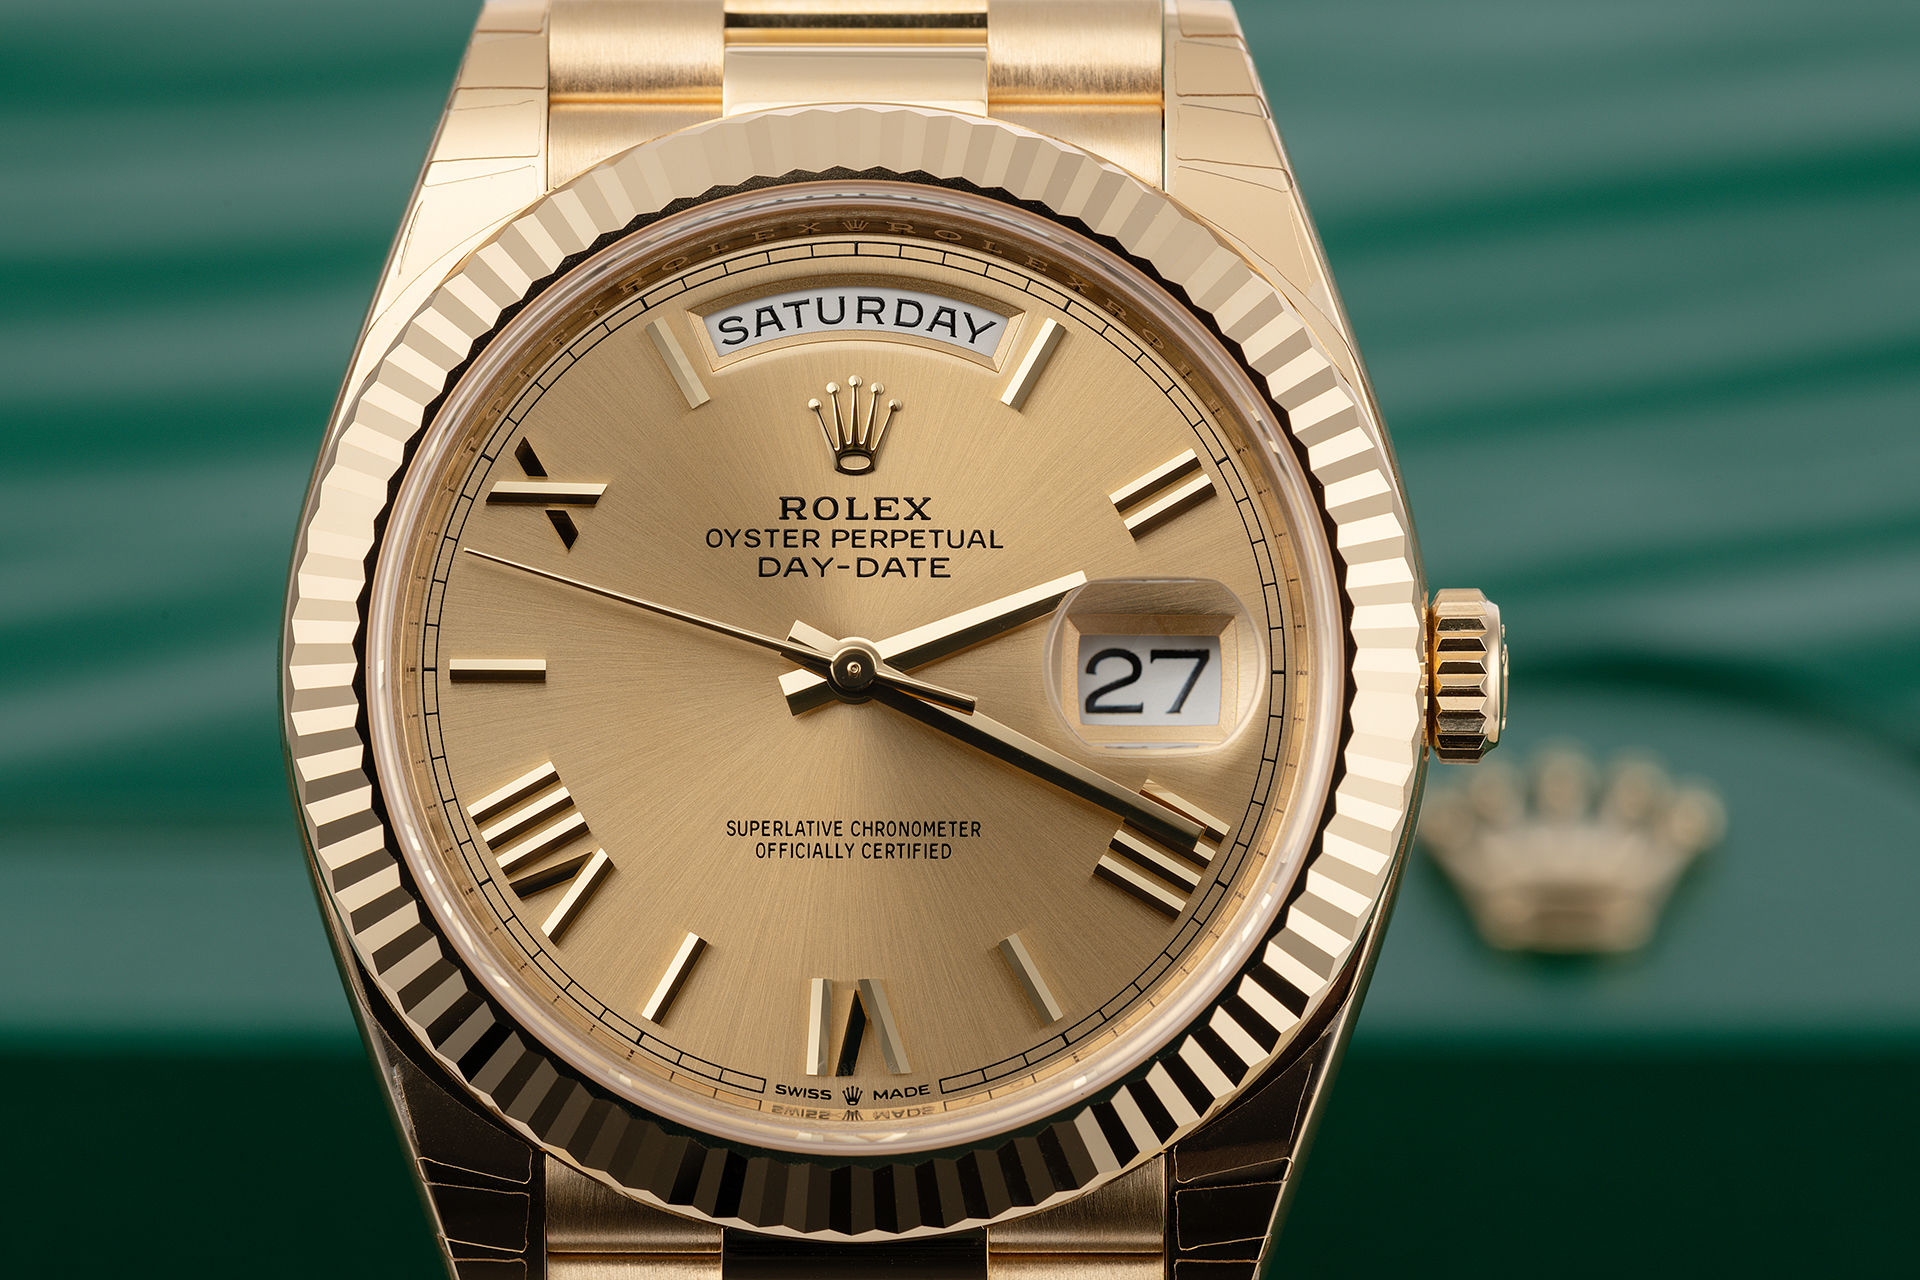 ref 228238 | 'Brand New' - 5 Year Warranty | Rolex Day-Date